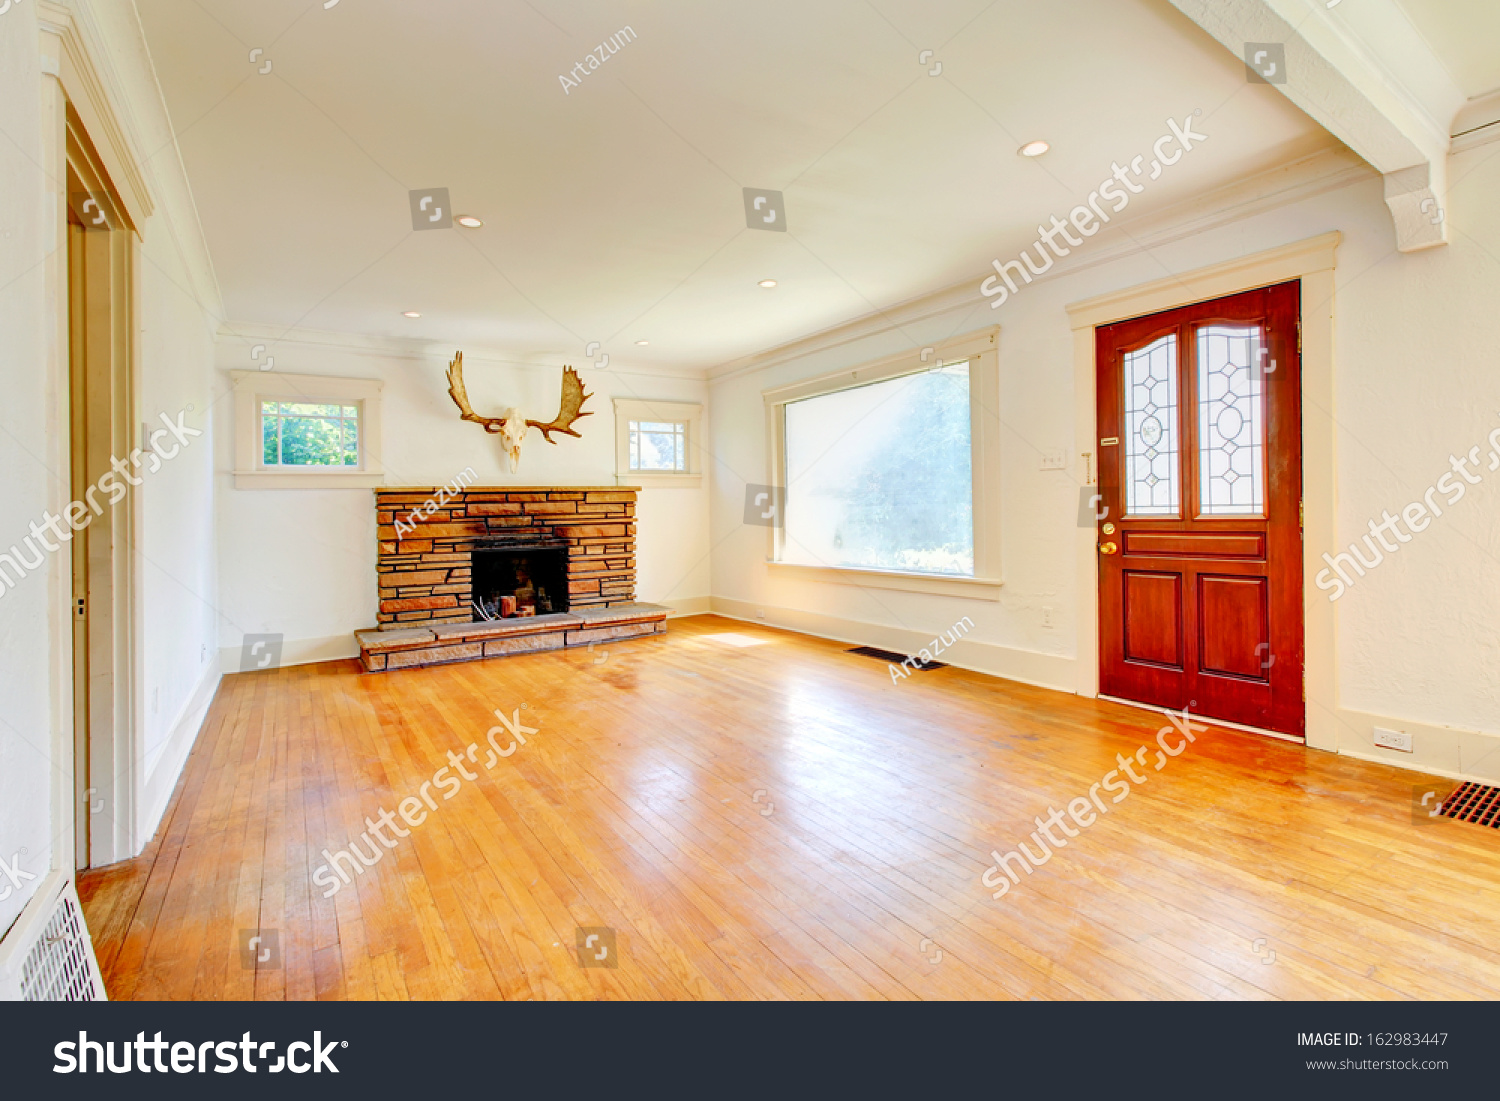 Covered front porch craftsman style home royalty free stock image - Old Small Craftsman Style Home Living Room With Hardwood Floor And Wood Front Door